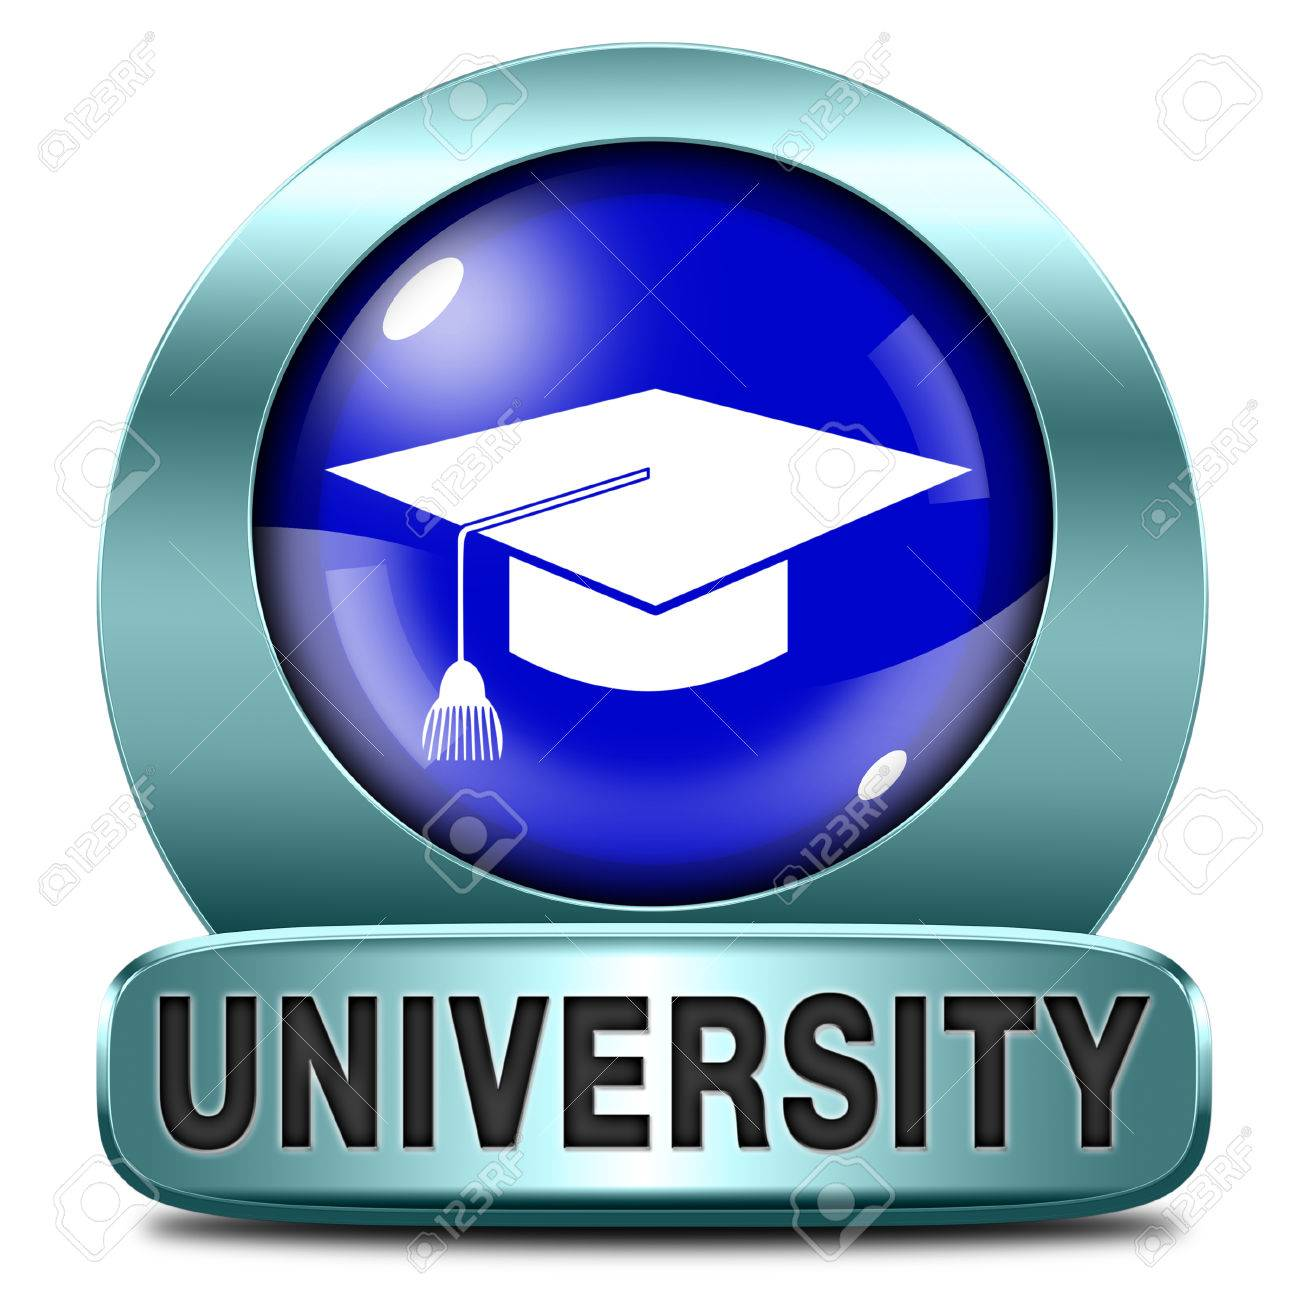 university learn get educated and gather knowledge and wisdom choose university choice university application admission entry requirements Stock Photo - 25598179